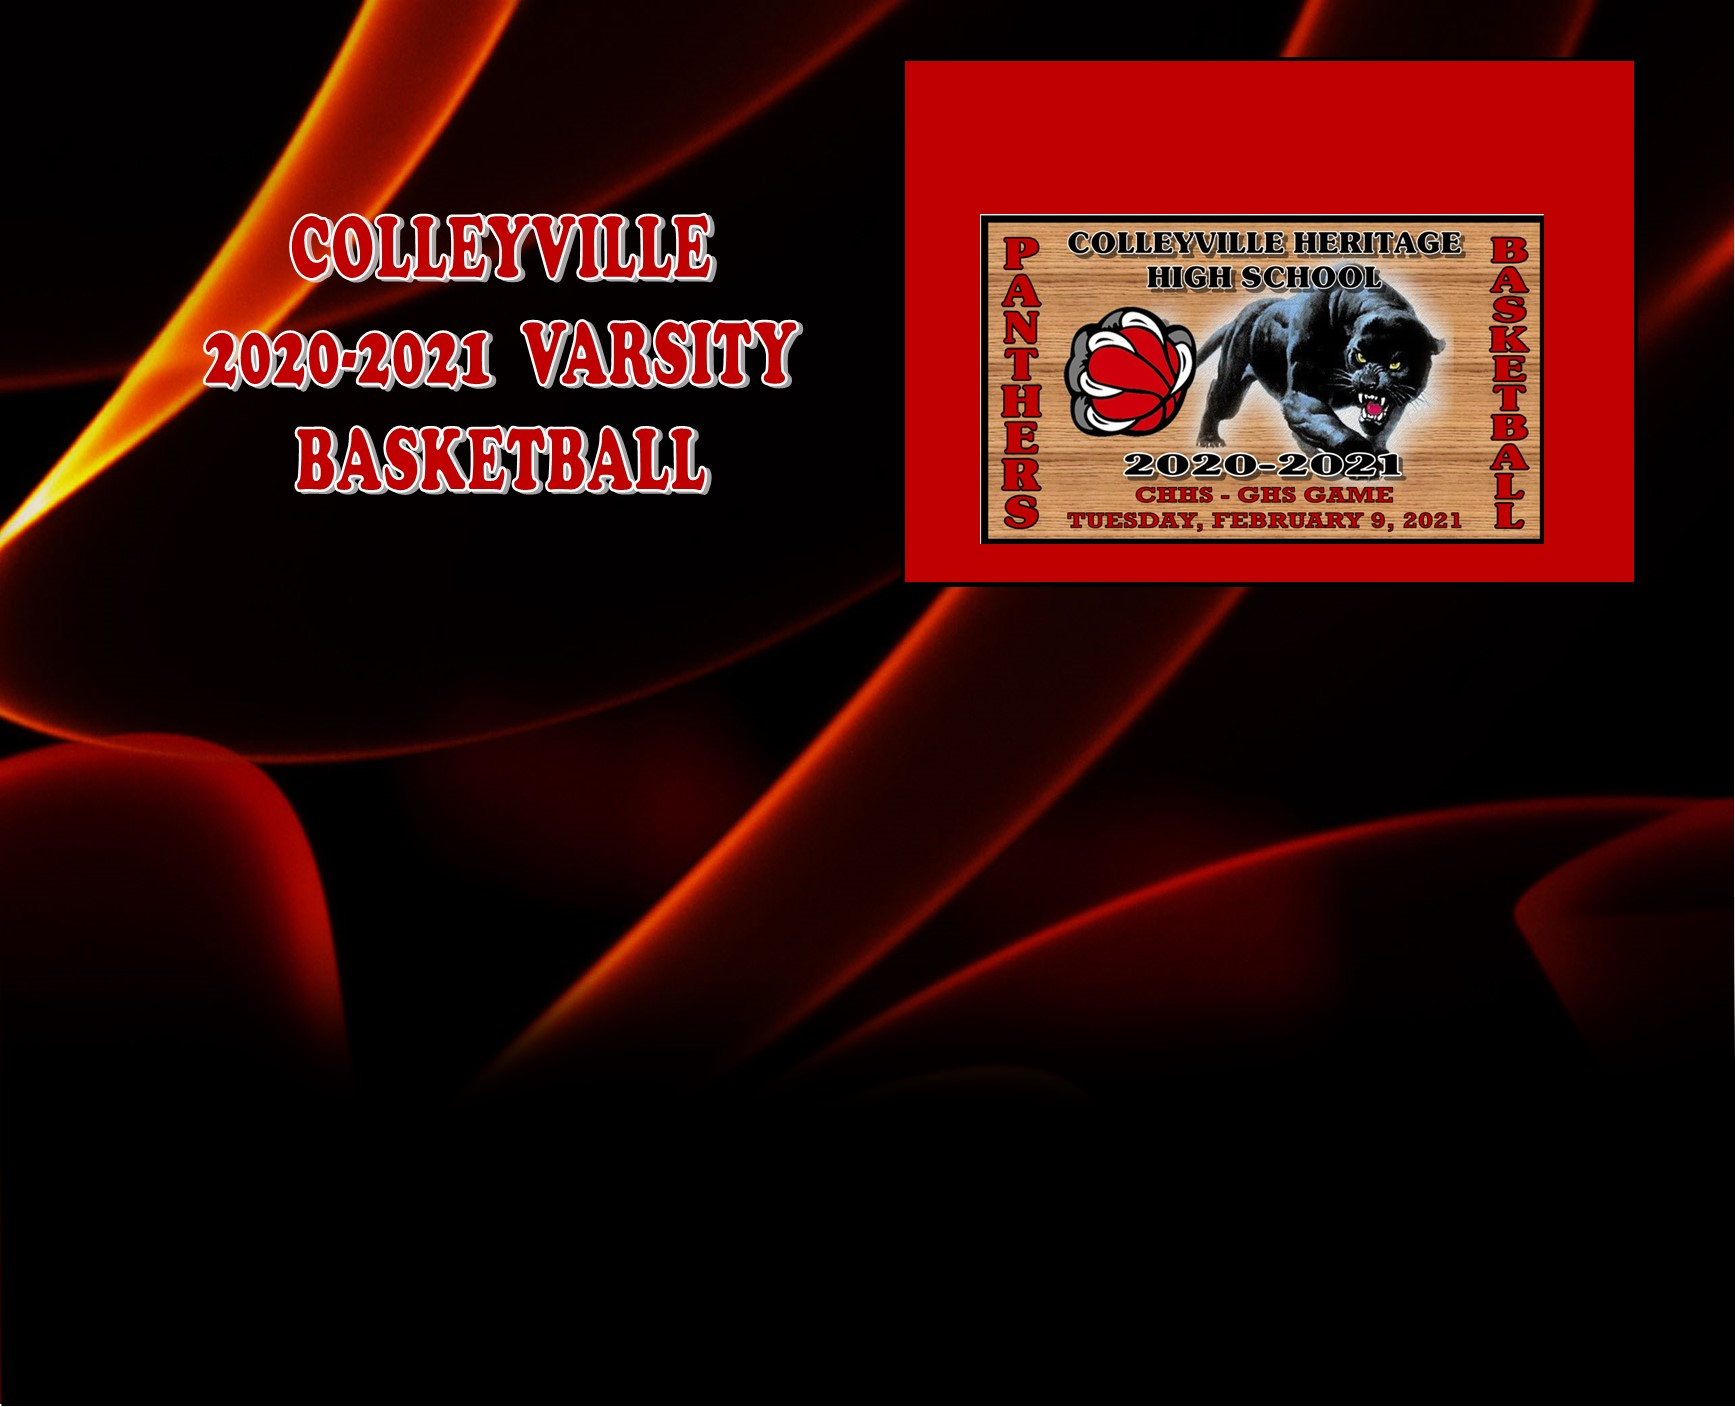 GCISD Basketball: Colleyville Panthers Overpowered by Rival Grapevine Mustangs 42-53